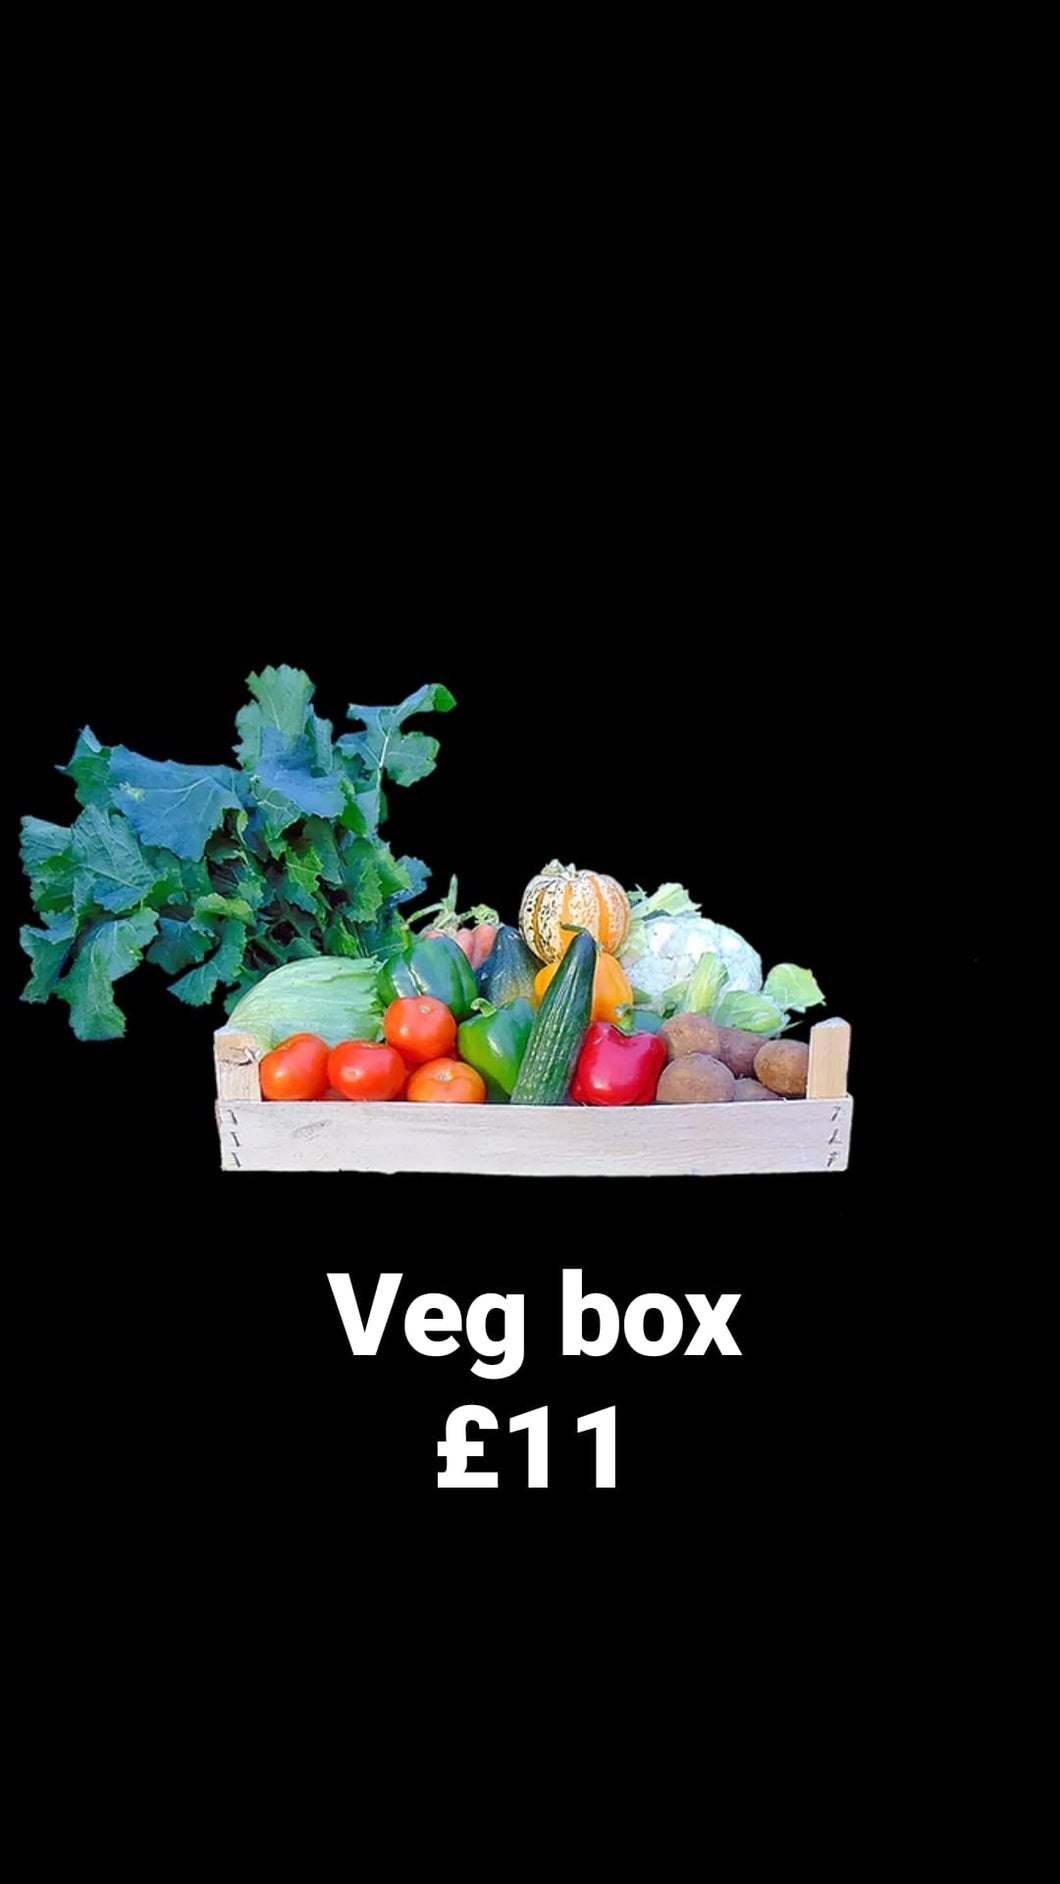 Non-organic fruit and veg boxes